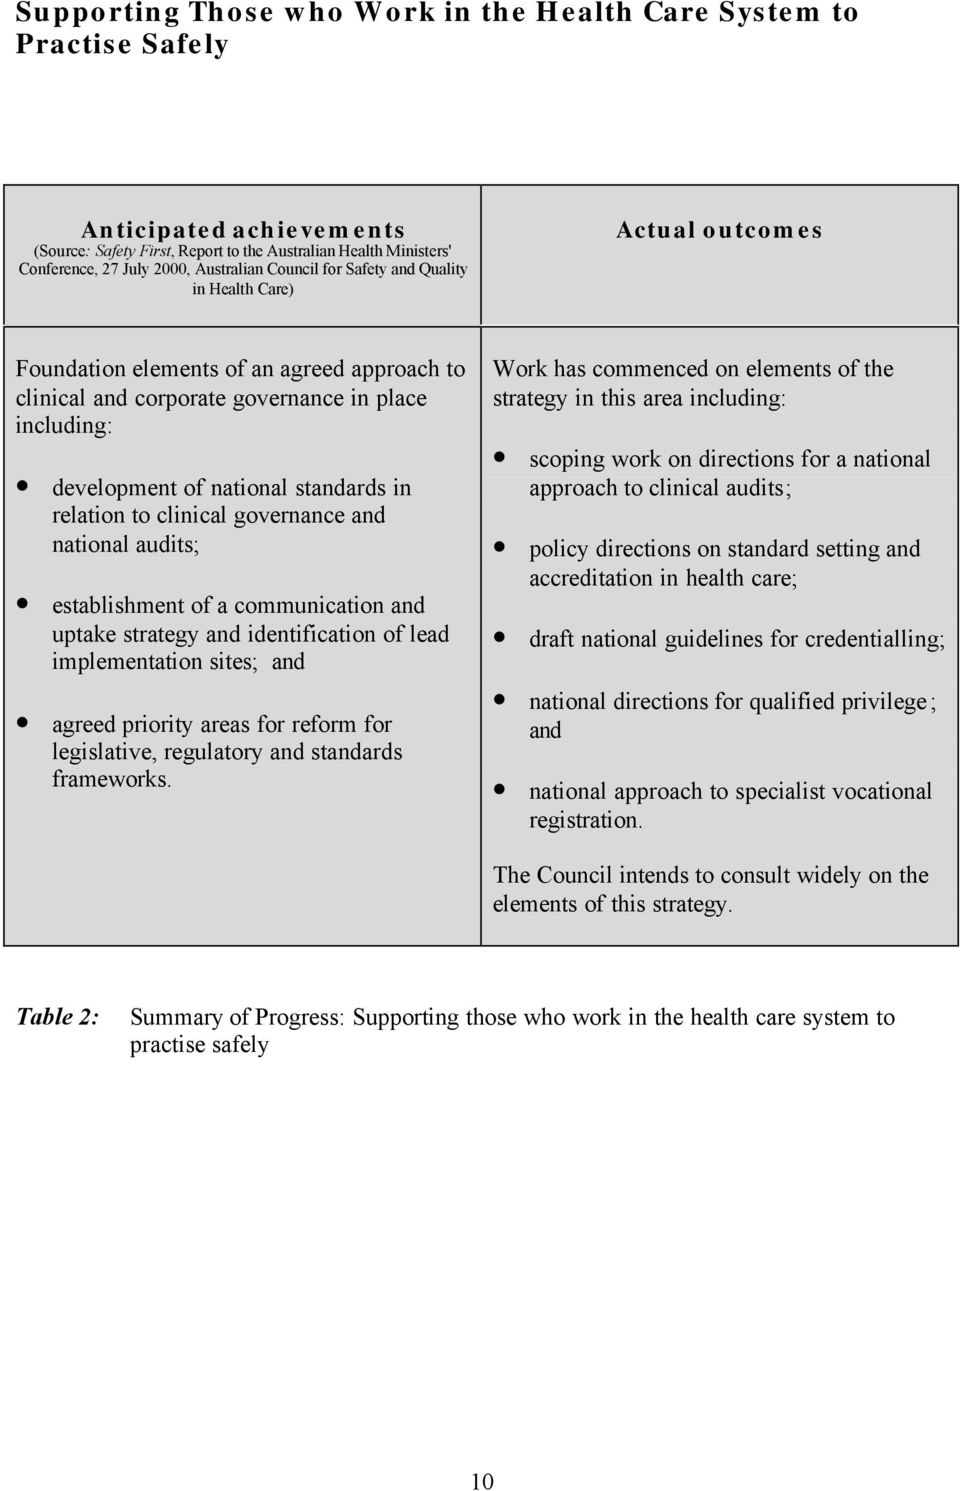 relation to clinical governance and national audits; establishment of a communication and uptake strategy and identification of lead implementation sites; and agreed priority areas for reform for